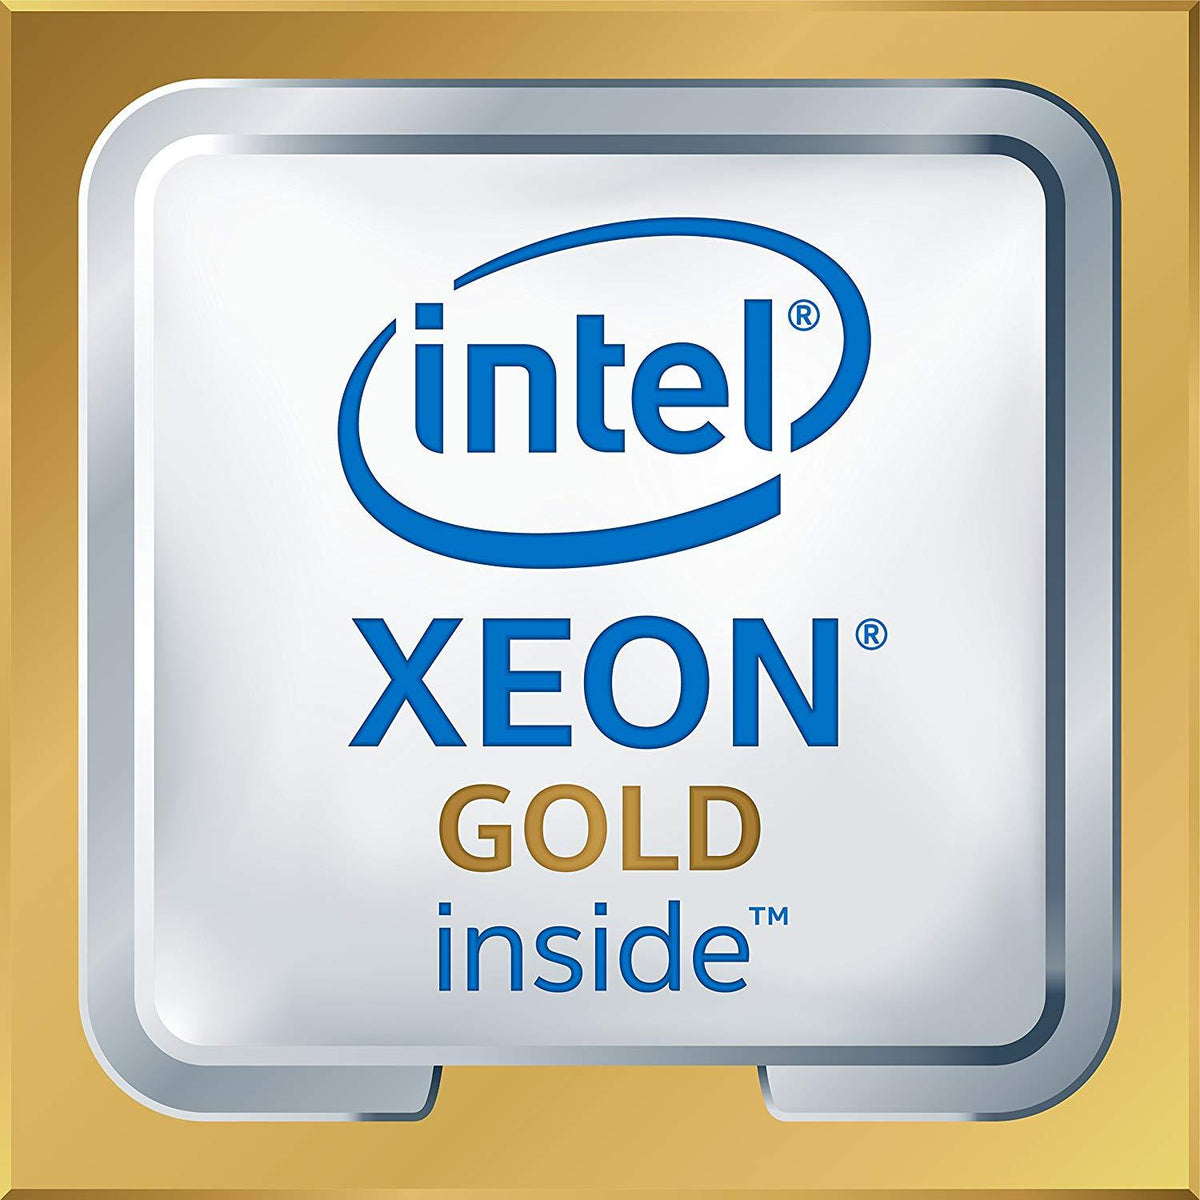 875939-B21 - HPE BL460c Gen10 Intel Xeon-Gold 5122 (3.6GHz/4-core/105W) Processor